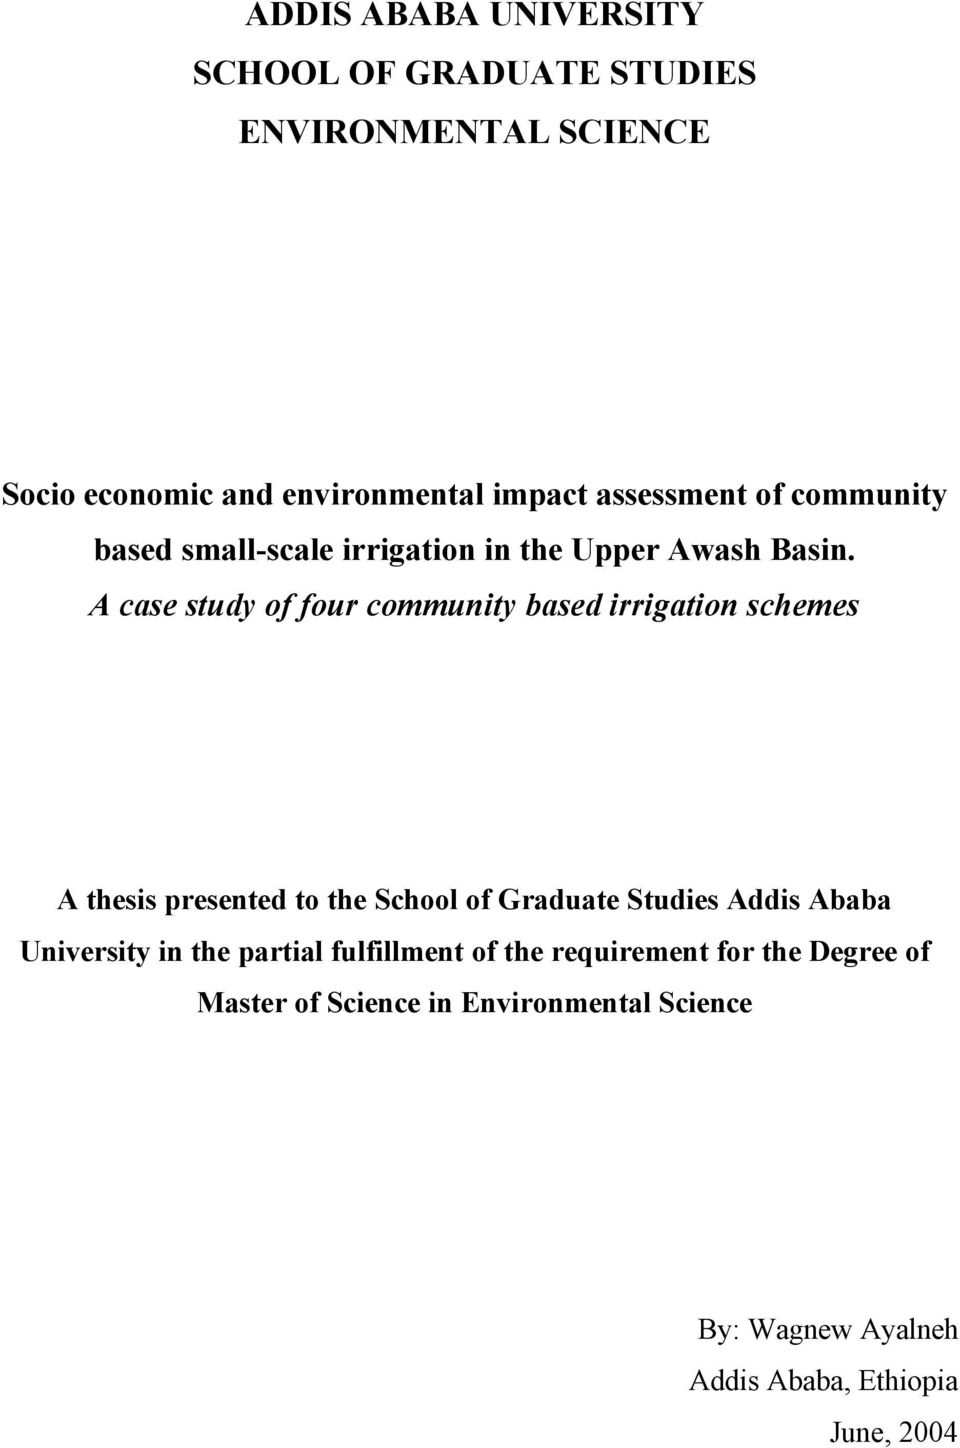 ADDIS ABABA UNIVERSITY SCHOOL OF GRADUATE STUDIES ENVIRONMENTAL